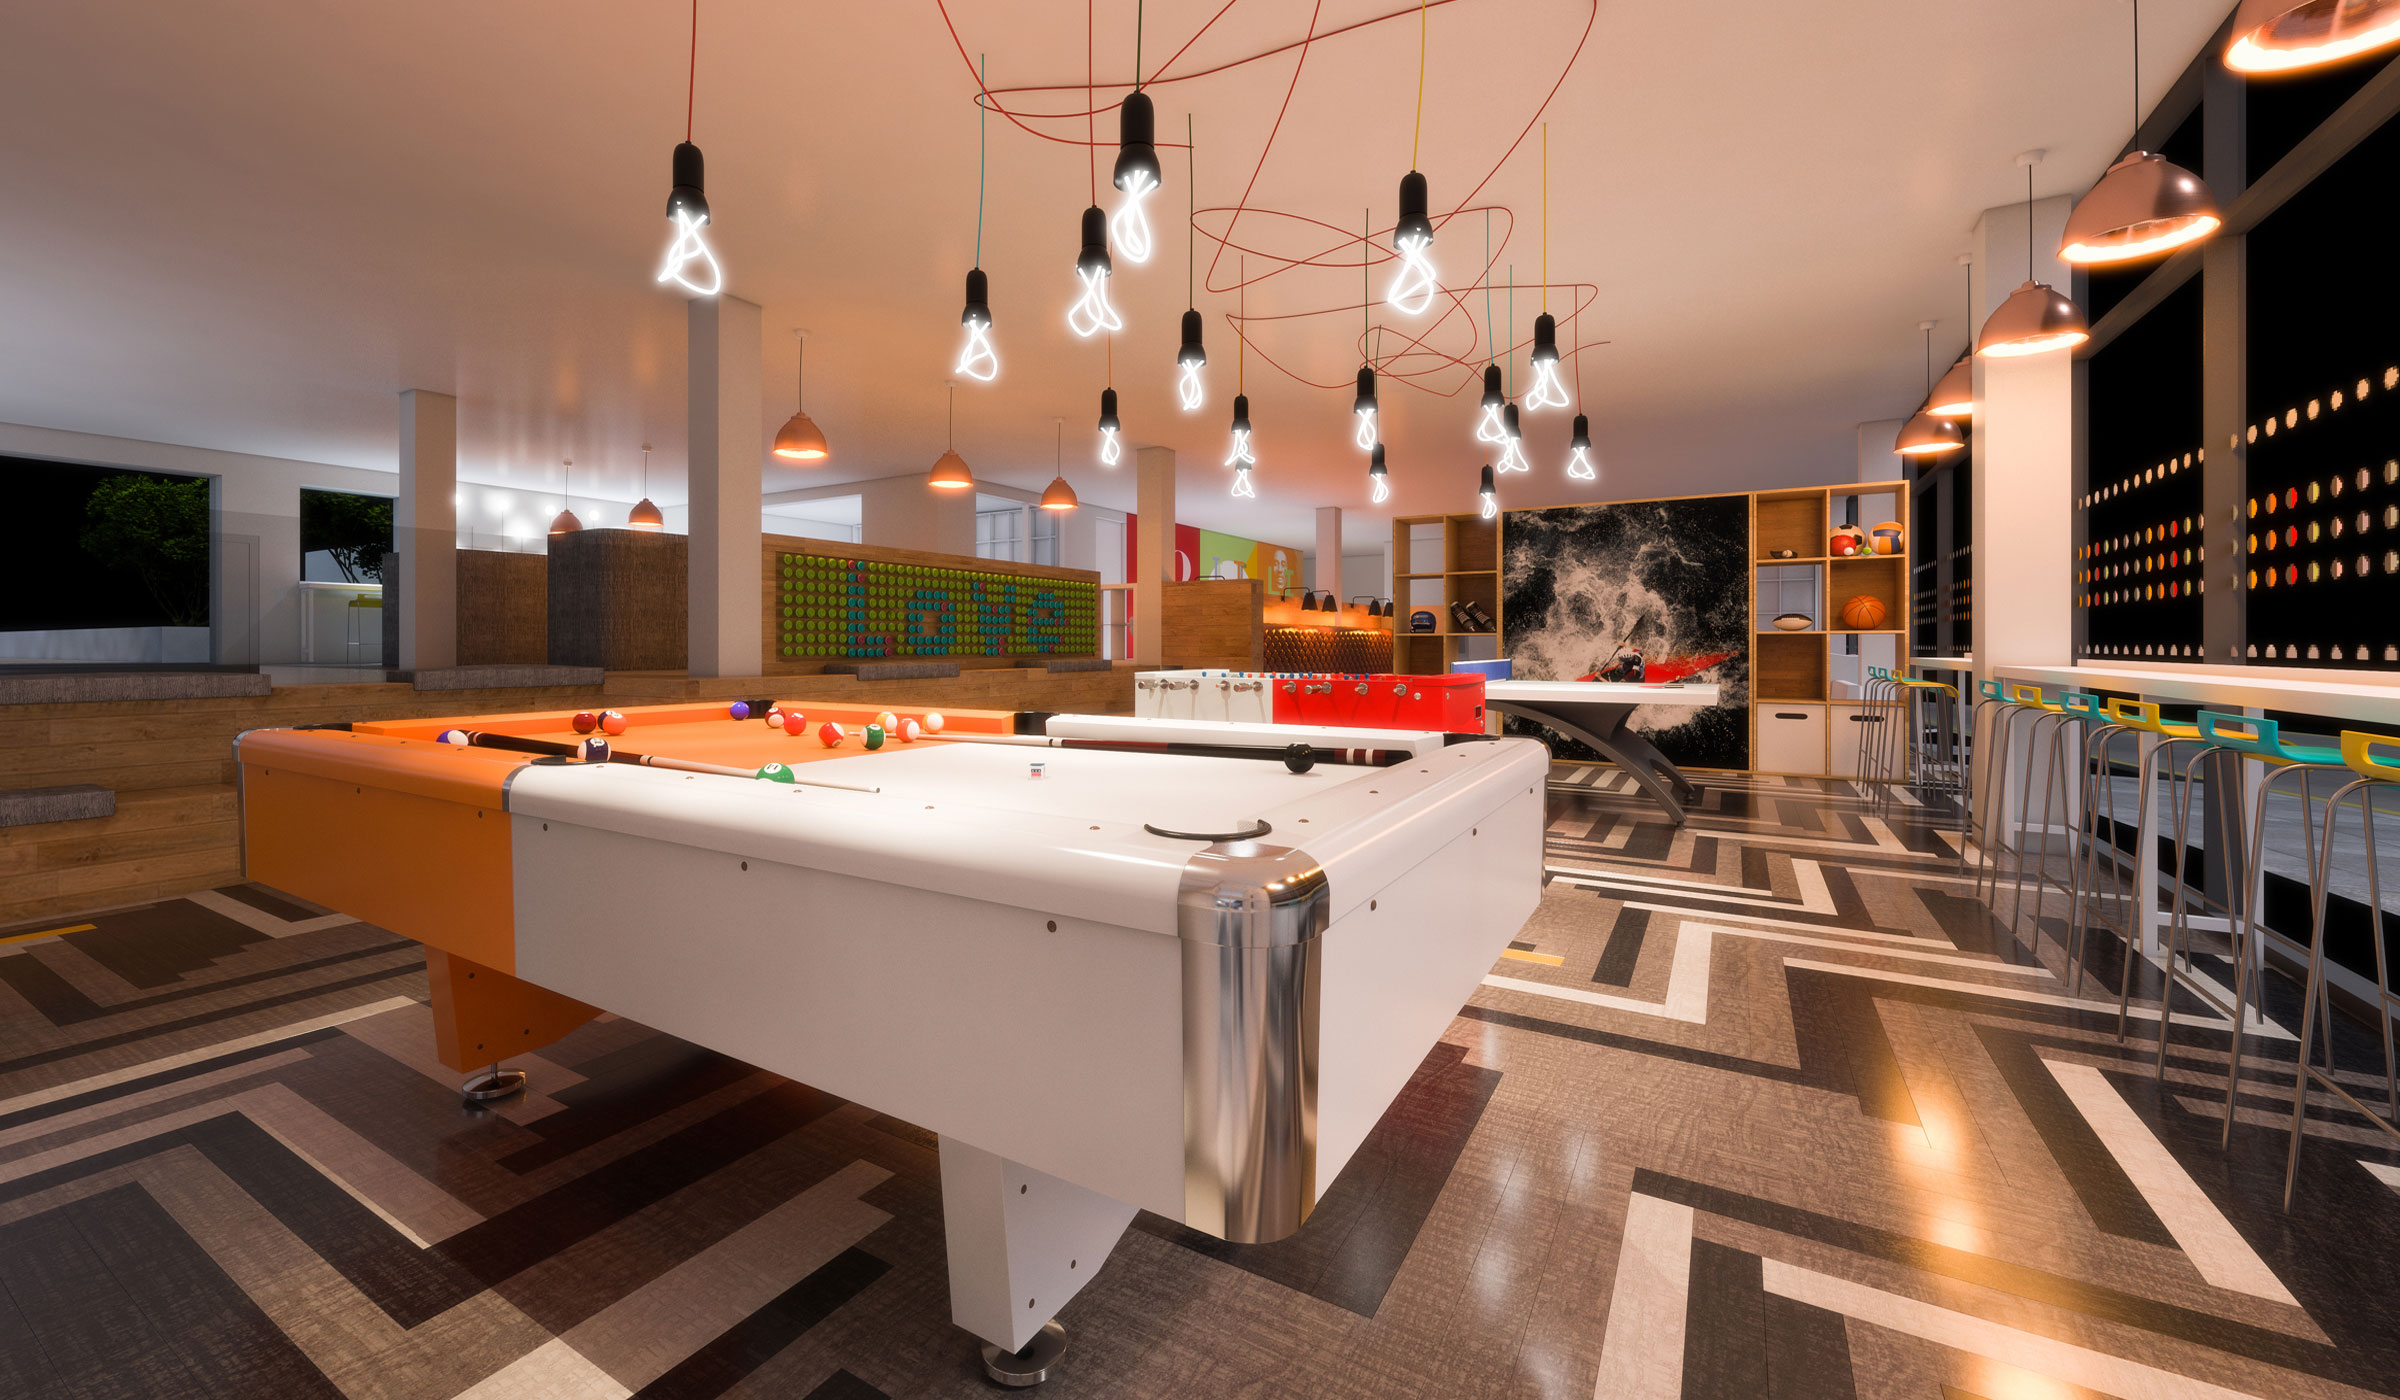 Vibe student accommodation games area